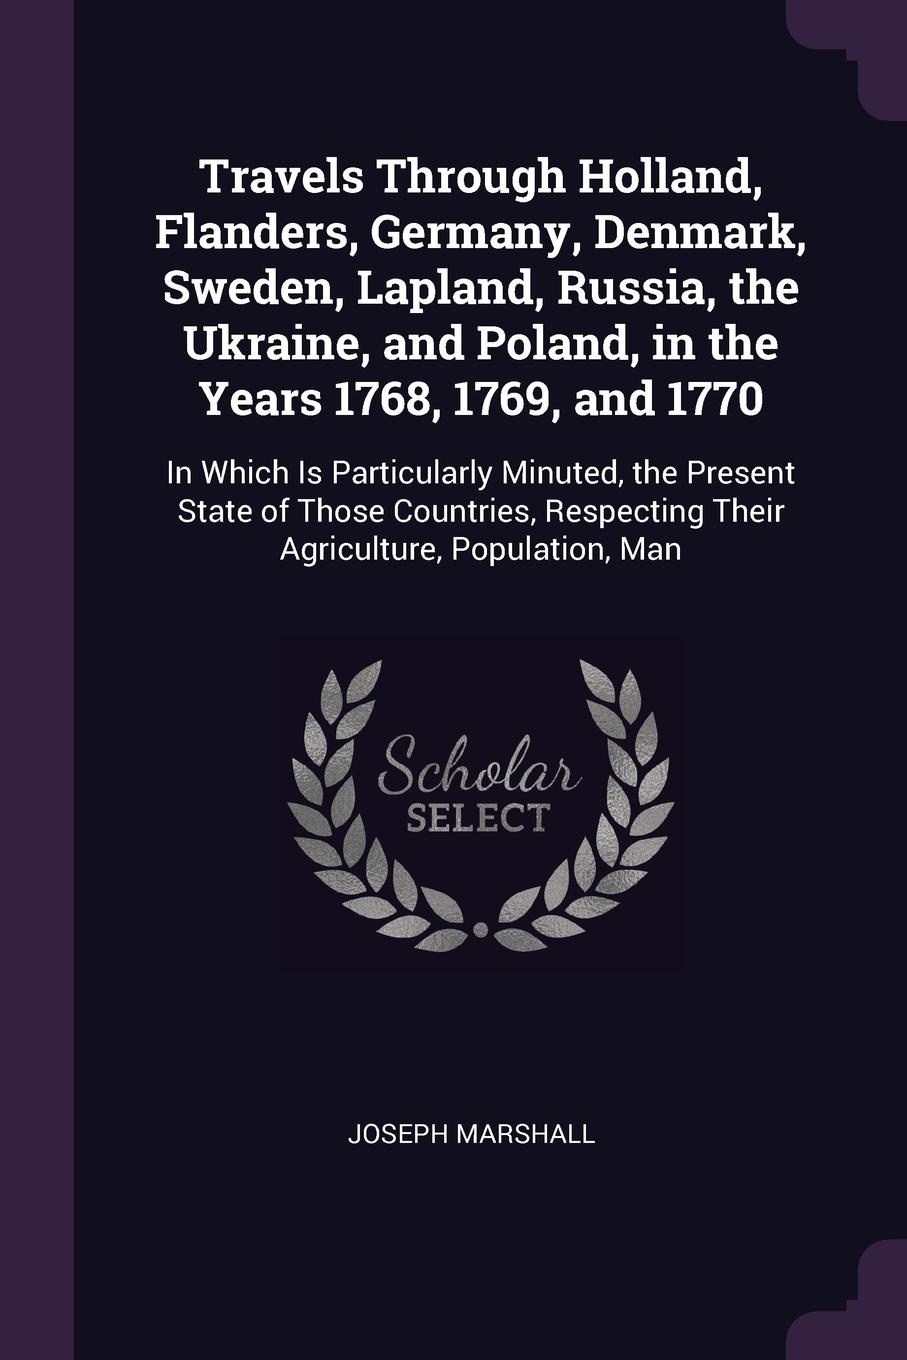 """Travels Through Holland, Flanders, Germany, Denmark, Sweden, Lapland, Russia, the Ukraine, and Poland, in the Years 1768, 1769, and 1770. In Which Is Particularly Minuted, the Present State of Those Countries, Respecting Their Agriculture, Populat... Книга""""Travels Through Holland, Flanders, Germany, Denmark..."""